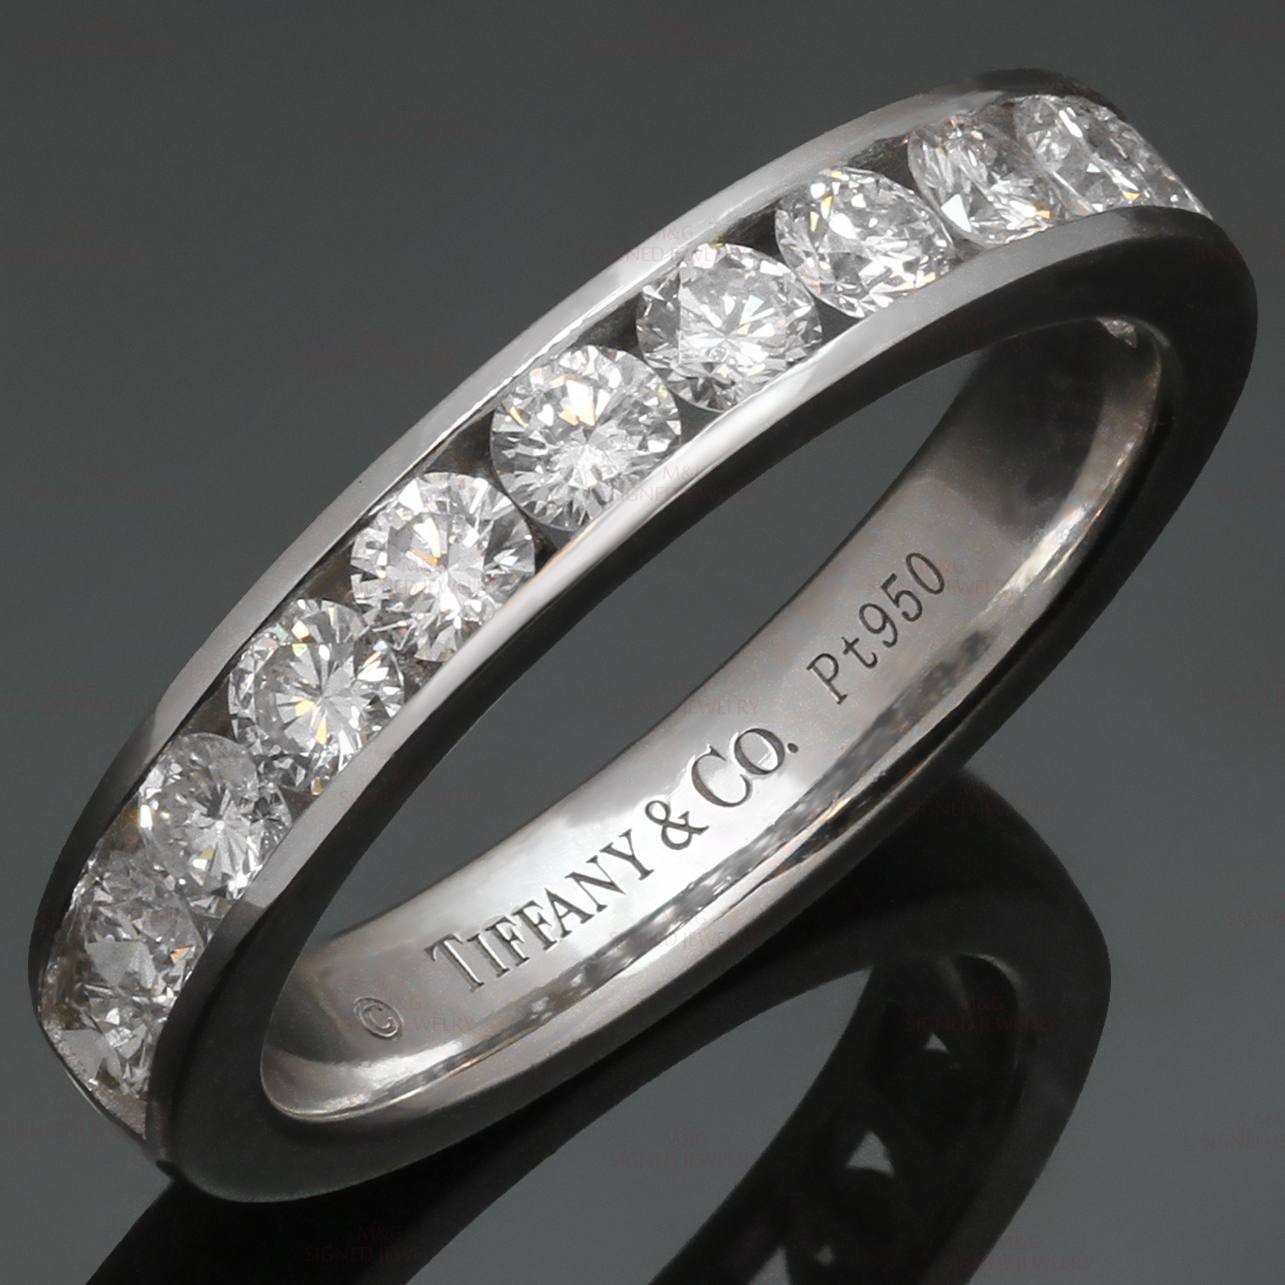 TIFFANY & CO. Diamond Platinum Wedding Band